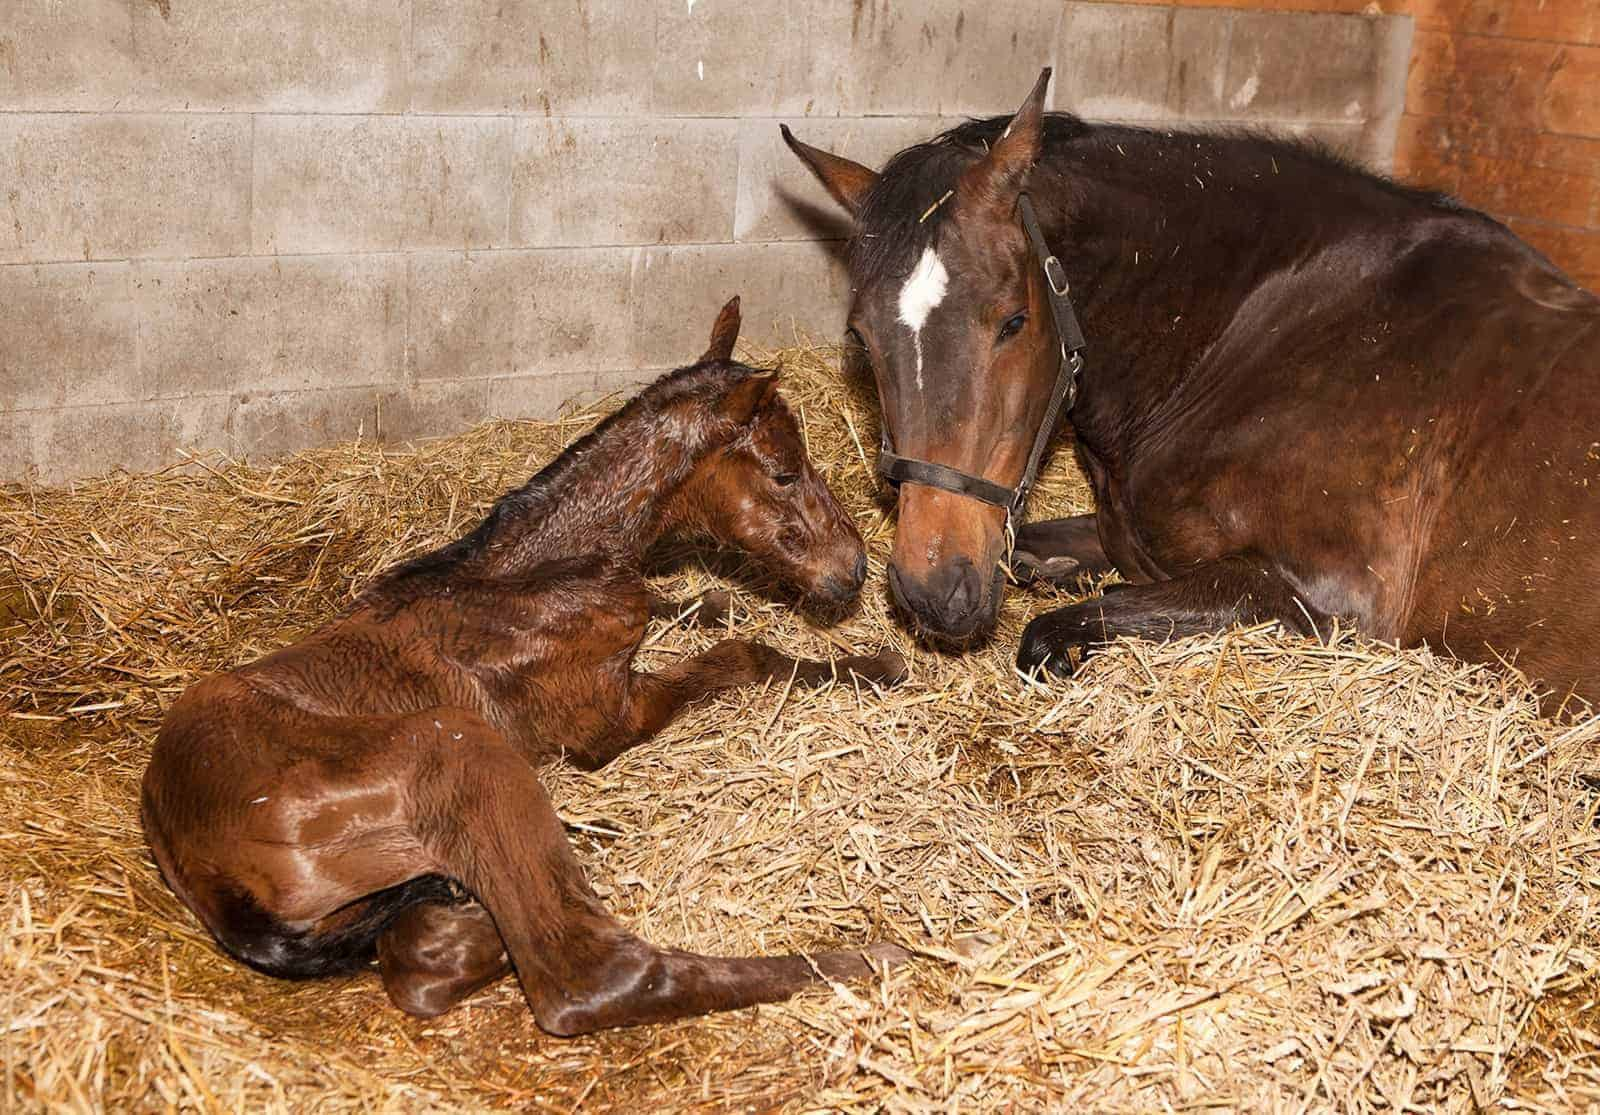 Normal Mare And Newborn Foal Behavior The Horse